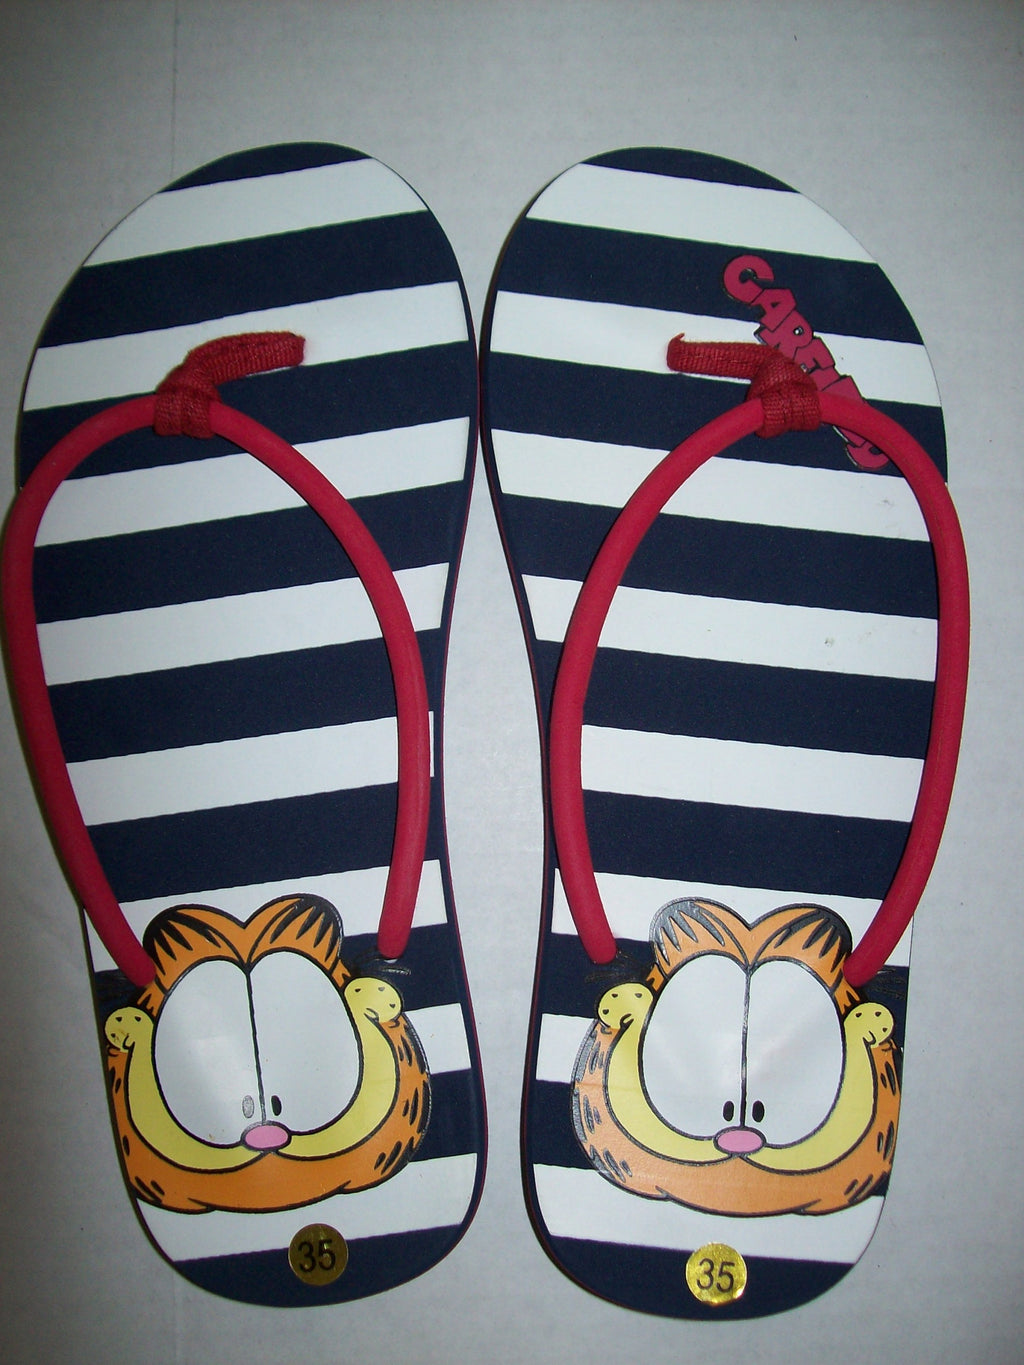 Garfield Striped Flip Flops - Simply Garfield